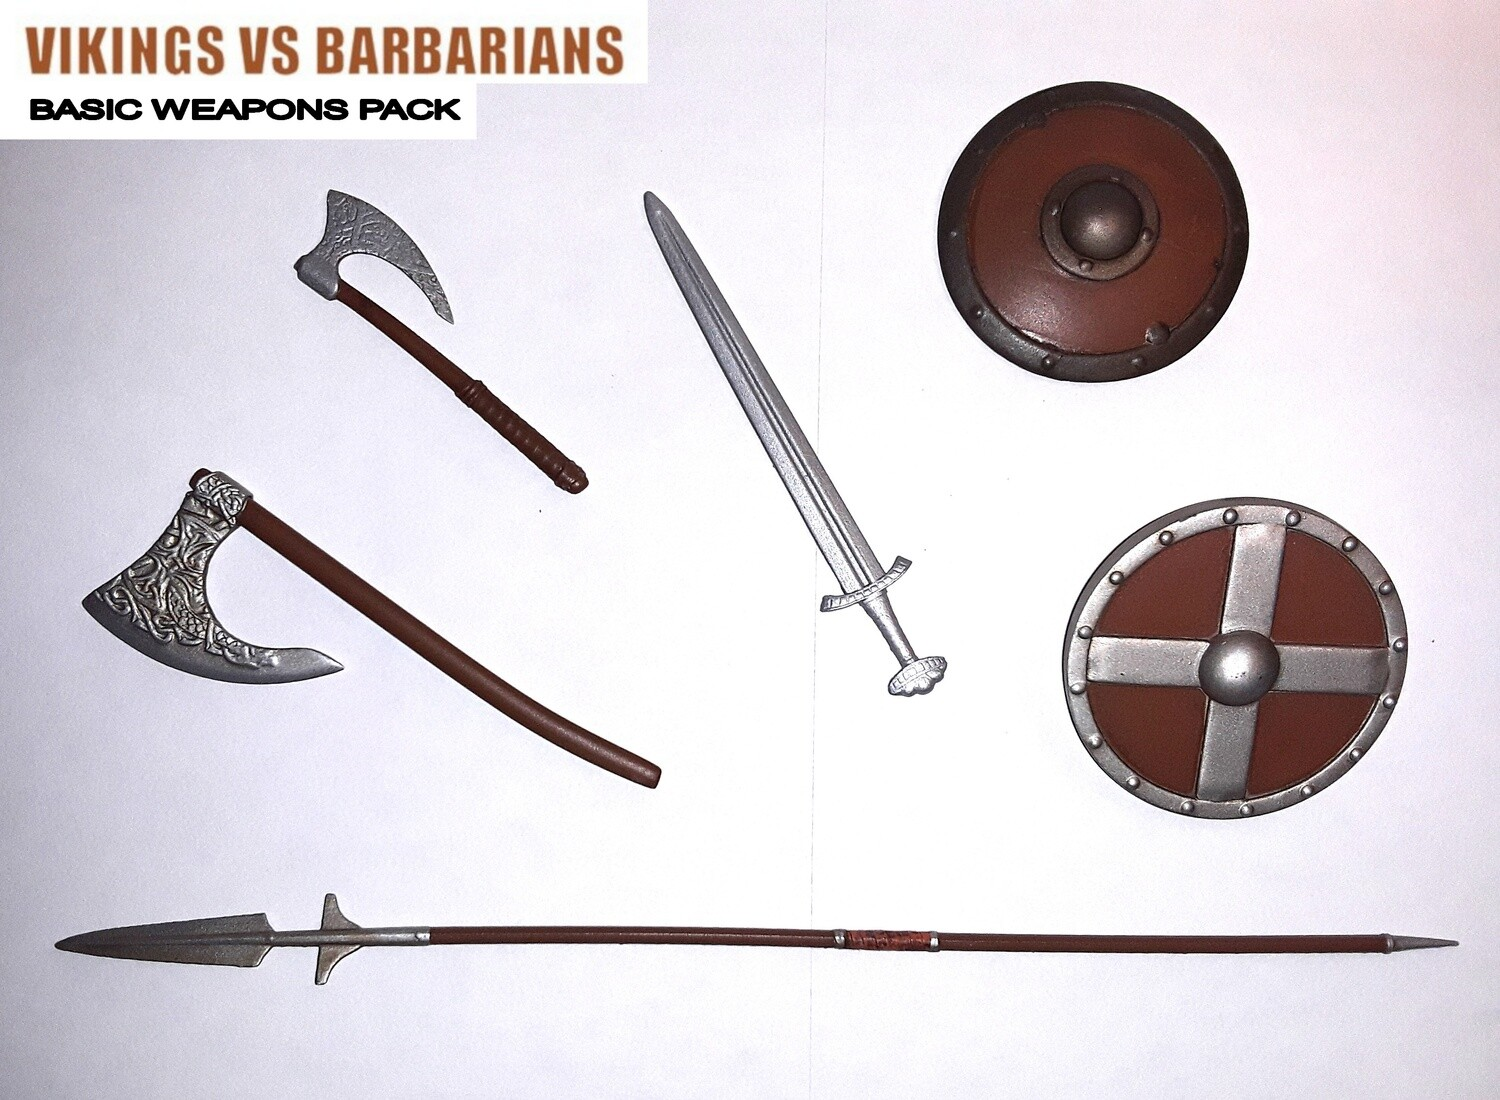 Viking vs Barbarian basic weapons pack